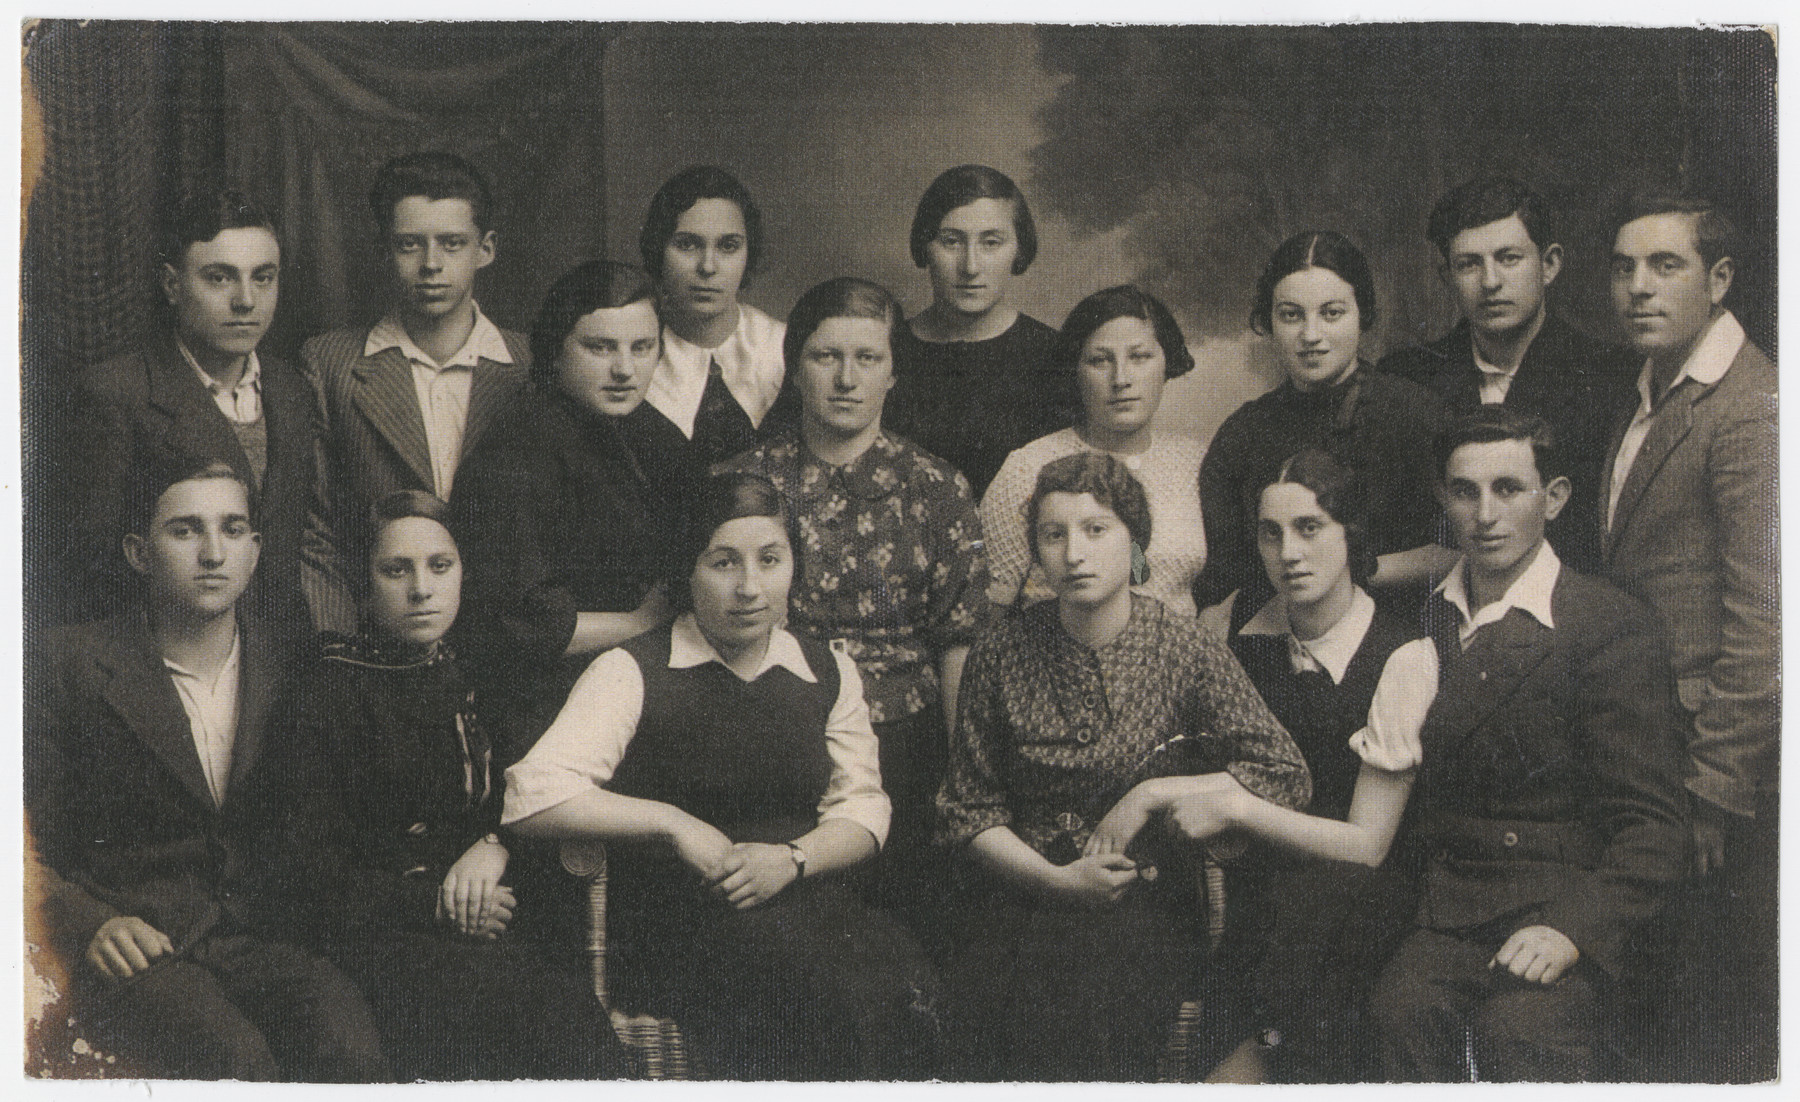 Group portrait of the students in the Hebrew Gymnasium in Jurbarkas, Lithuania.